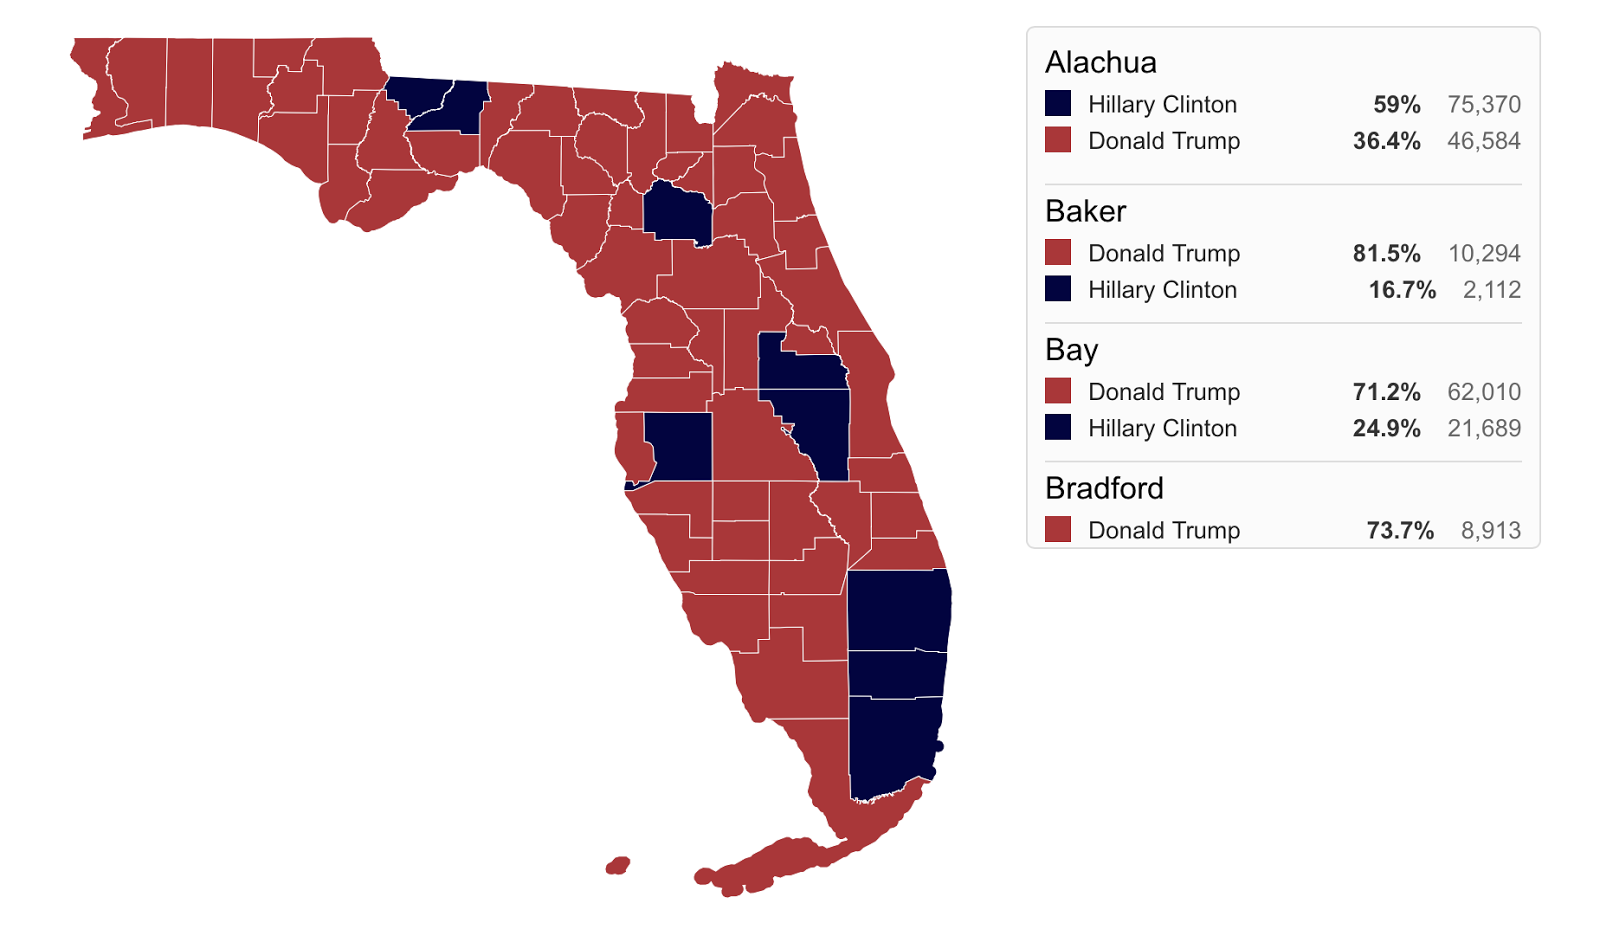 here we can see that the majority of the counties did in fact go red but the blue counties did have quite a pull on the overall impact of the results